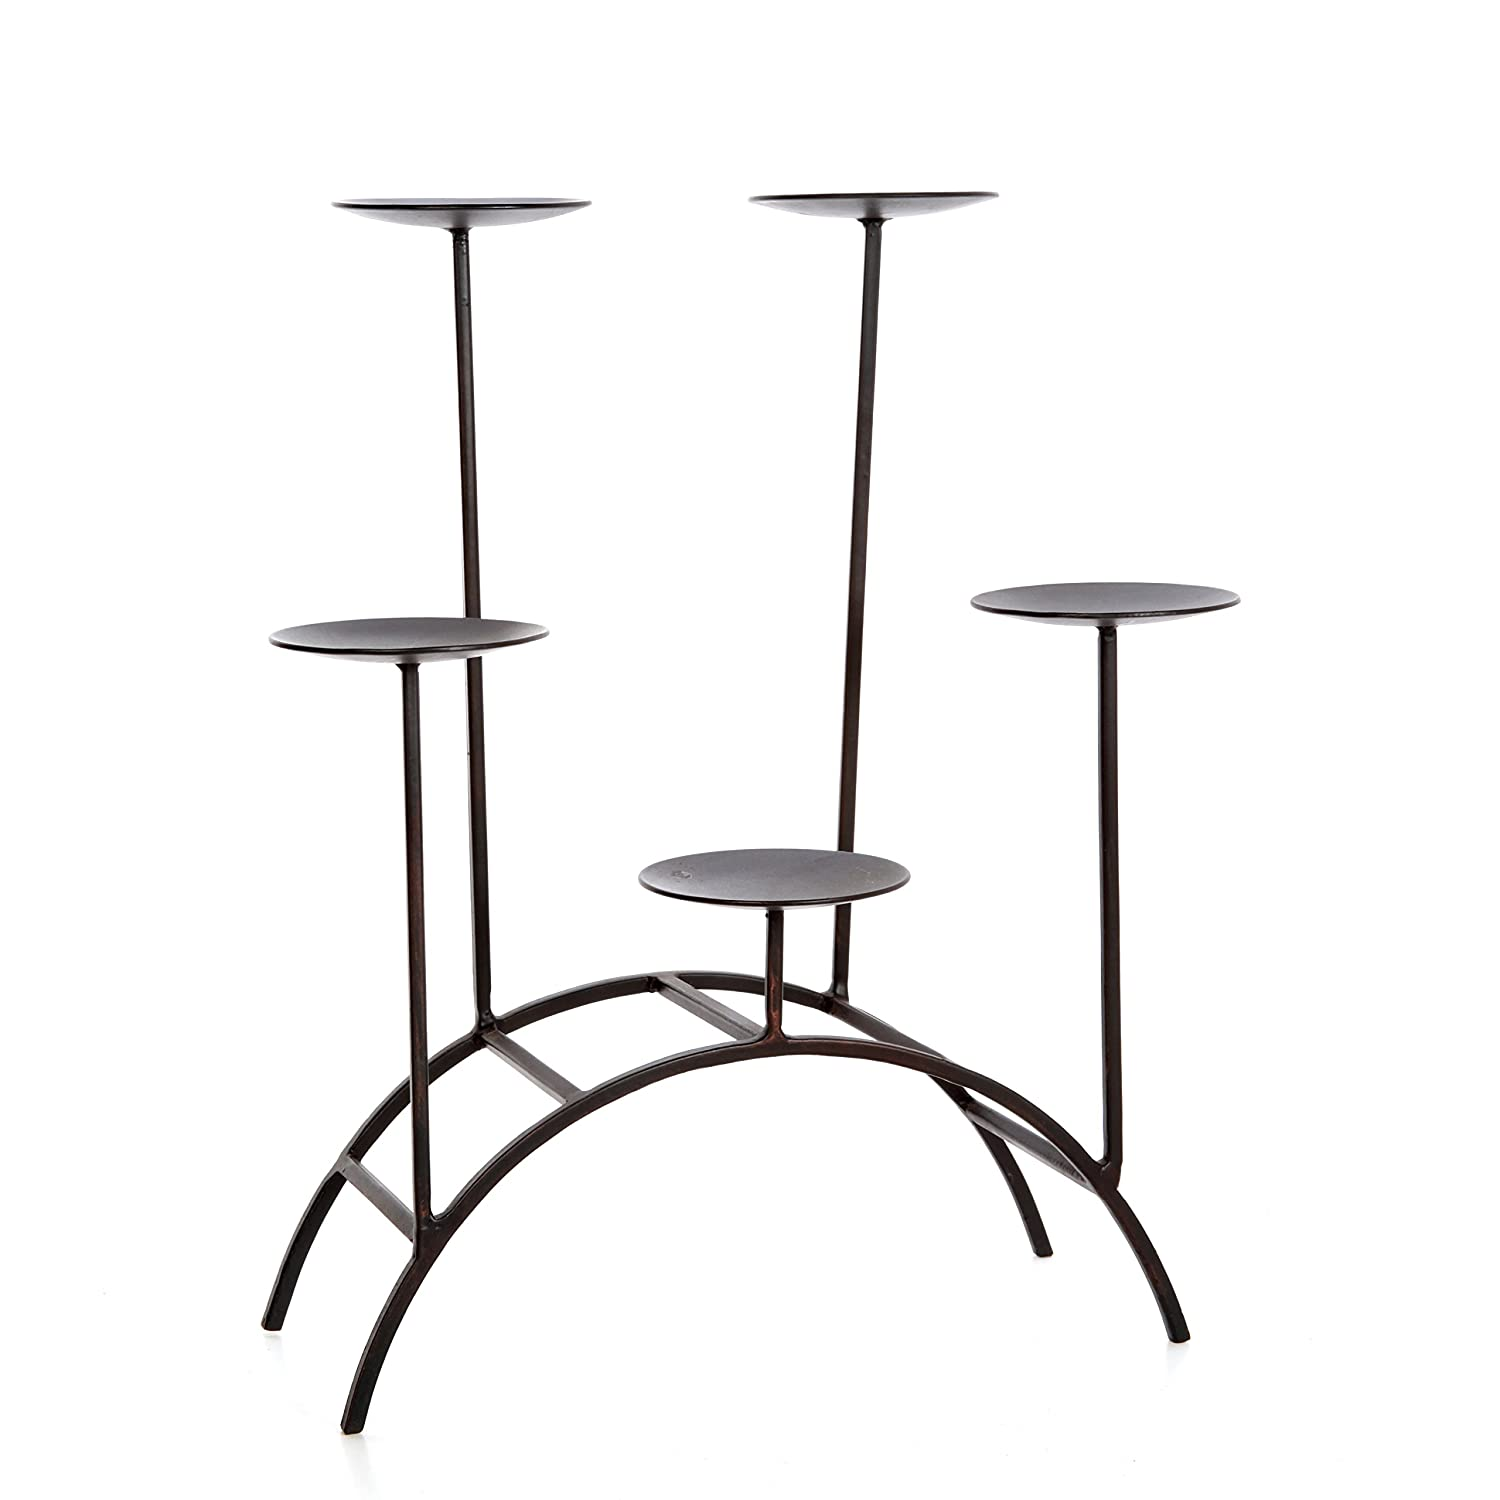 Hosley's Fireplace or Den, 17 Inch Iron 5 Pillar Candleholder. Modern Art, Classic Design, Hand Made By Artisans. Ideal Gift, weddings, Spa, Reiki, meditation, Party, bridal, votive tea light gardens O9. Hosley' s Fireplace or Den HG Global